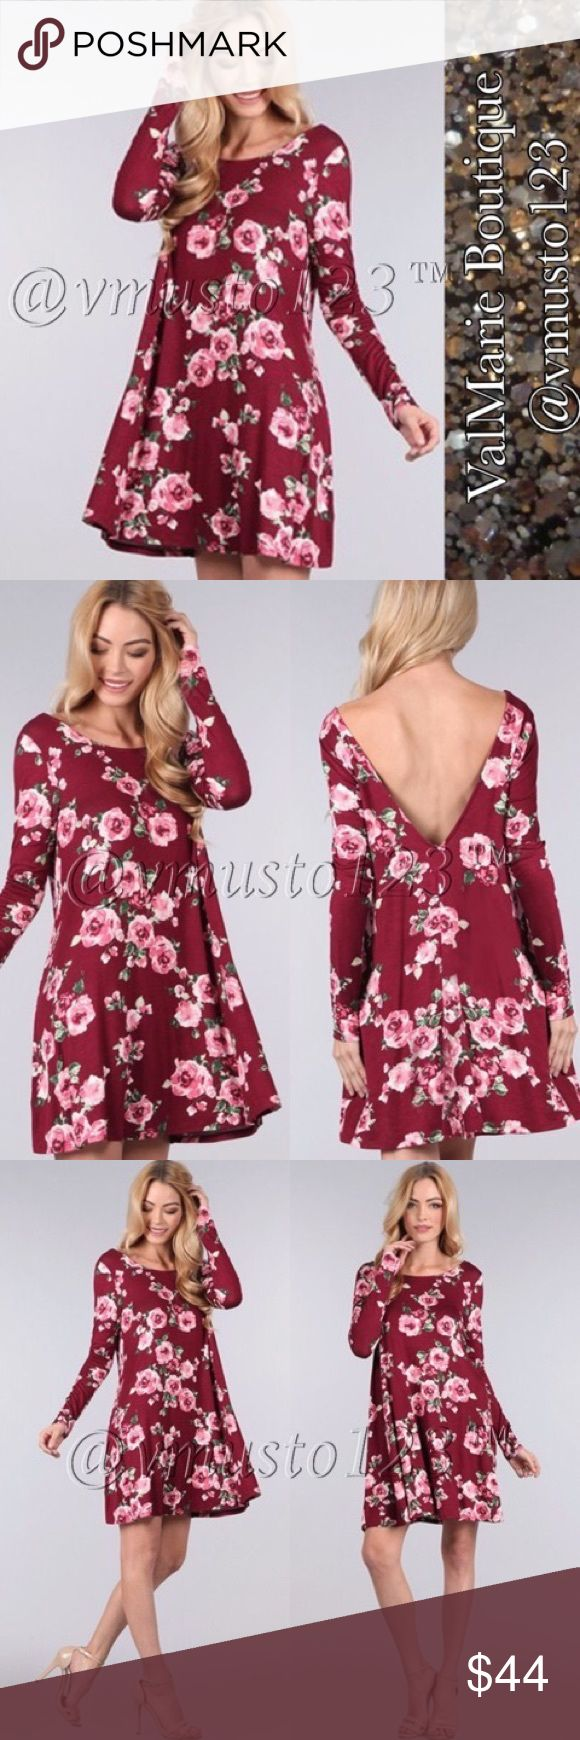 """PREMIUM BURGUNDY FLORAL SWING DRESS MADE IN USA- PREMIUM COLLECTION  SUPER CHIC & FLIRTY LOW BACK FLOWY SWING DRESS - PERFECT FOR VALENTINES DAY❤️️ Made in a comfy, rayon jersey knit.   FEATURES: Deep V Back, long sleeves, and swing fit. Pair up with boots or flirt it up with heels & tights  APPROXIMATELY 34""""- S(2-4) M(6-8) L(10-12) fits true to size, a little flowy   ‼️PRICE ABSOLUTELY FIRM‼️ THESE ARE MADE IN USA  BOUTIQUE QUALITY YOU MAY BUNDLE FOR A DISCOUNT ValMarie Boutique Dresses"""